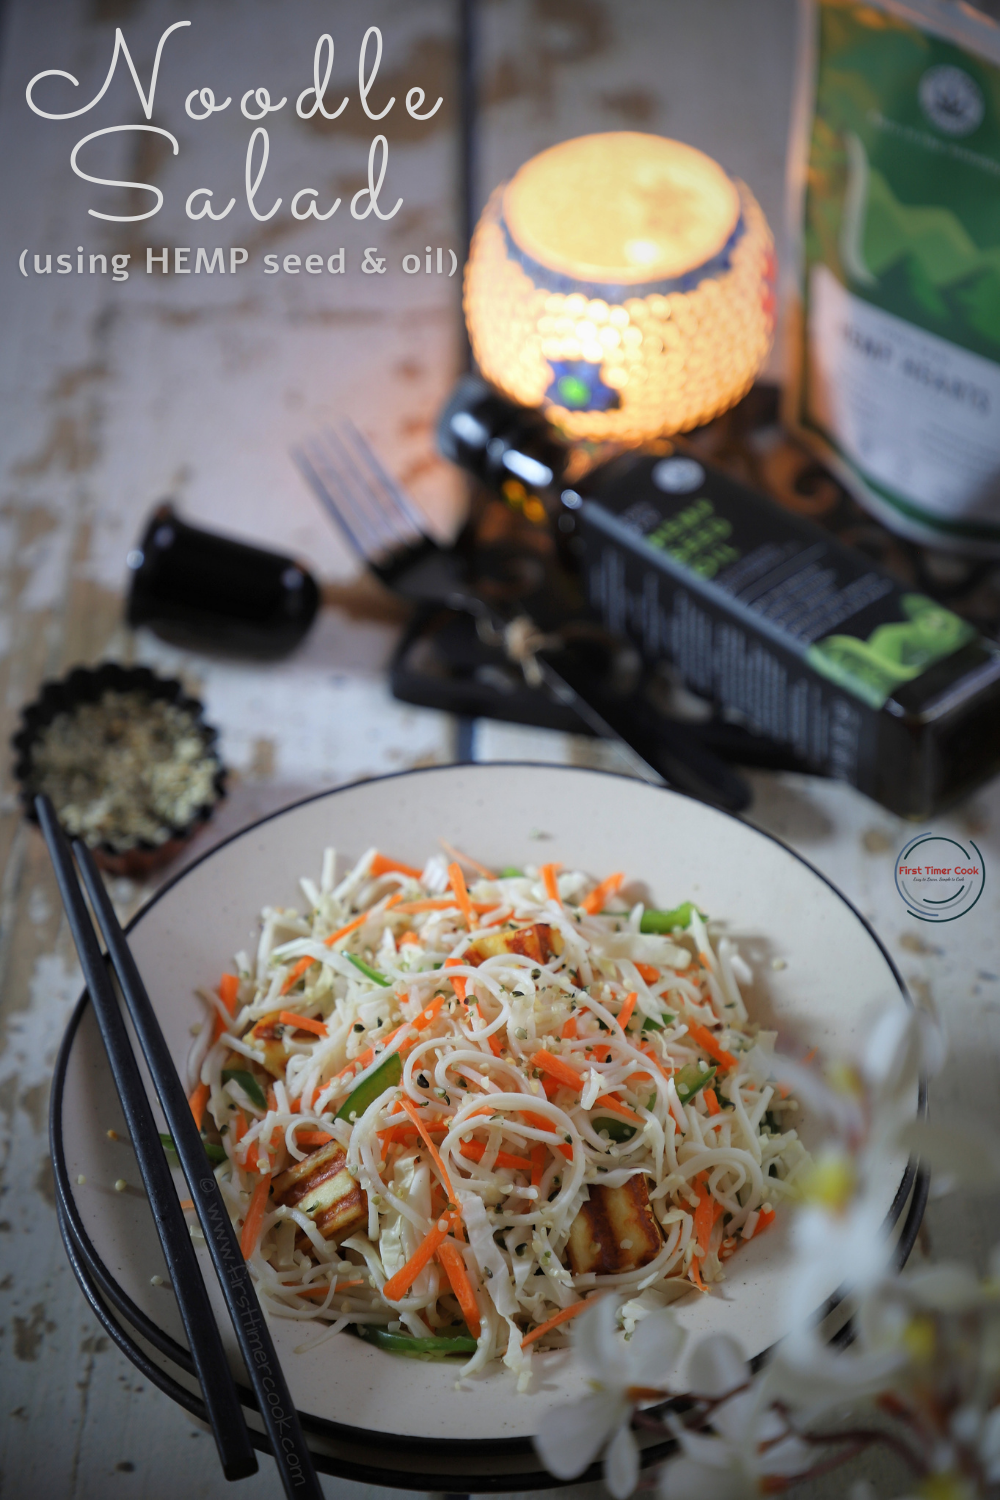 Noodle Salad using Hemp Oil & Seeds